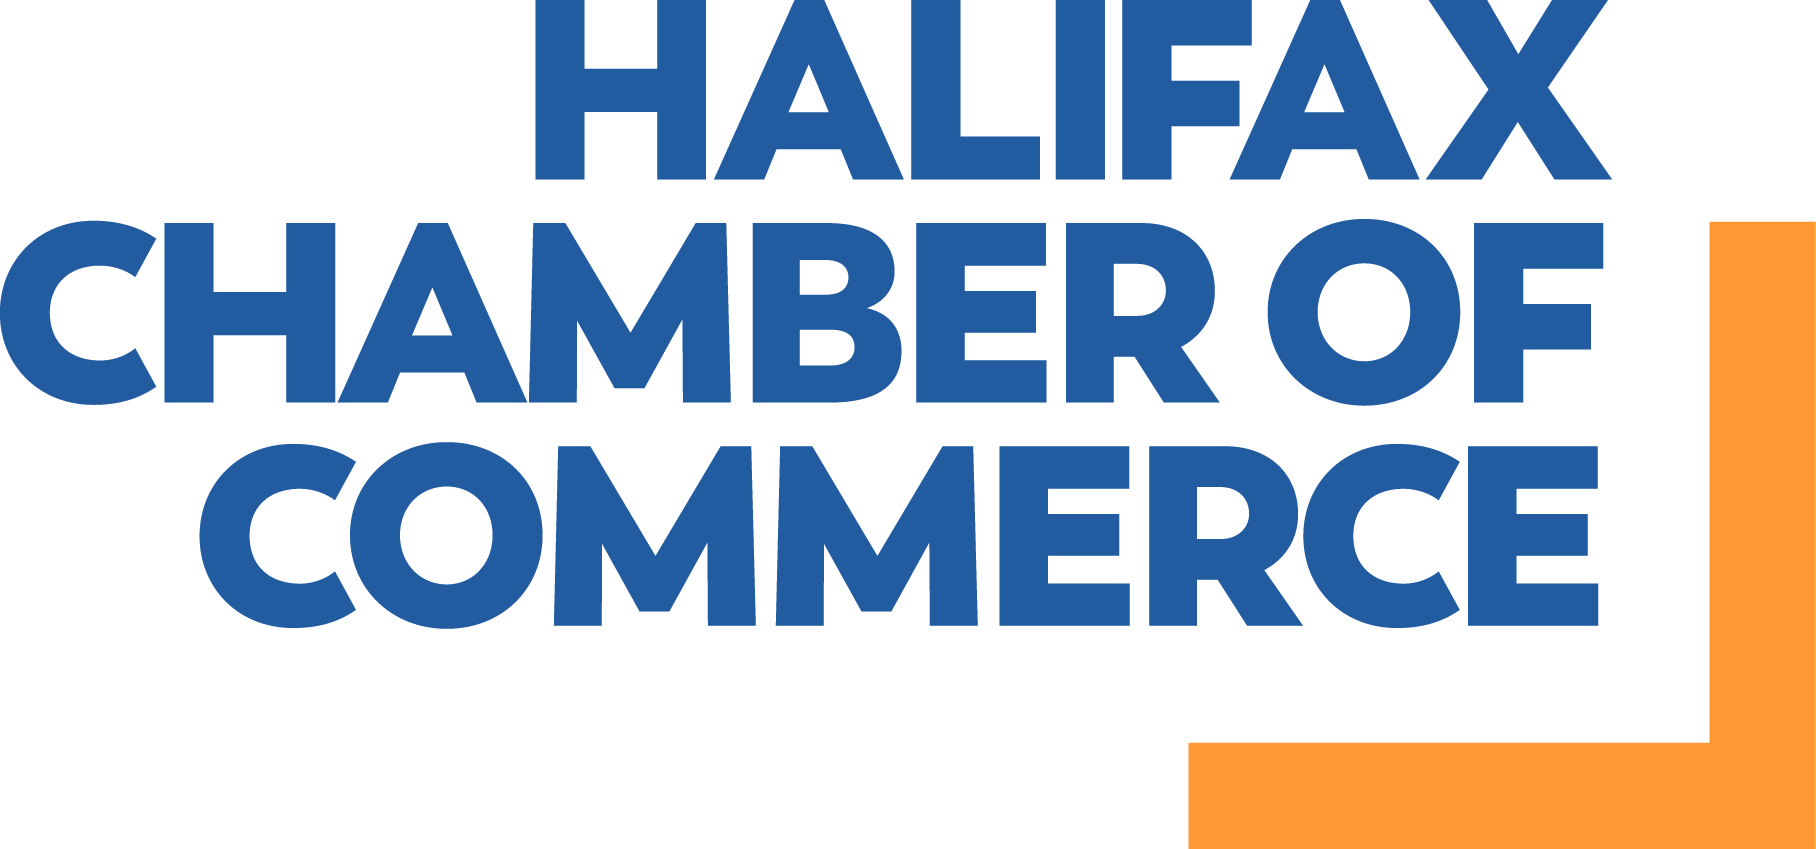 Halifax Chamber of Commerce